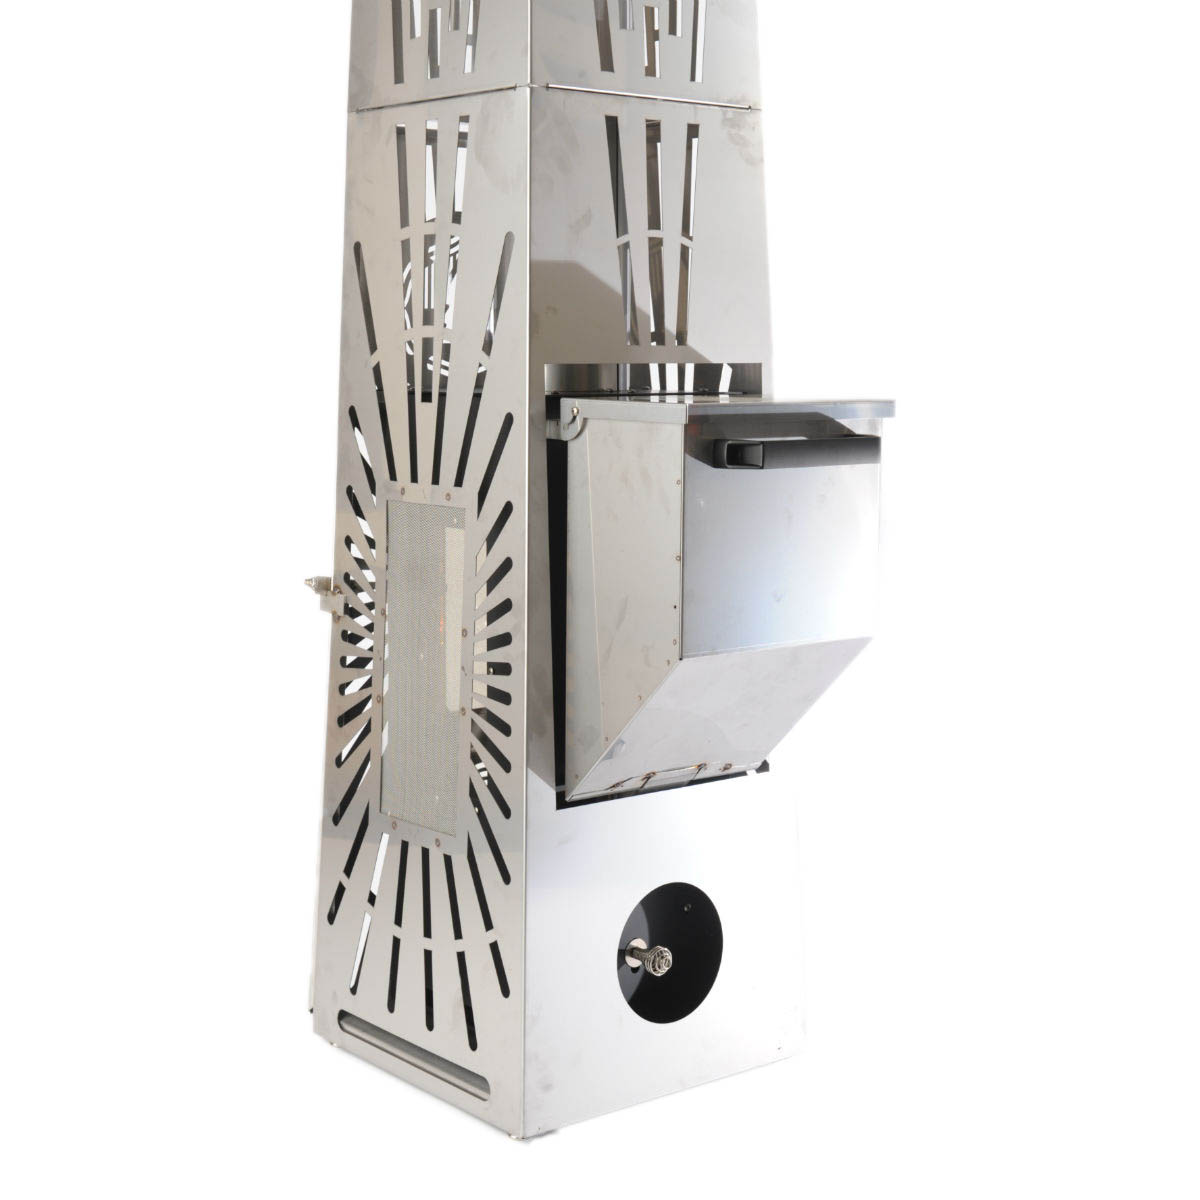 Big Timber Elite Patio Heater The Hottest Outdoor Heater